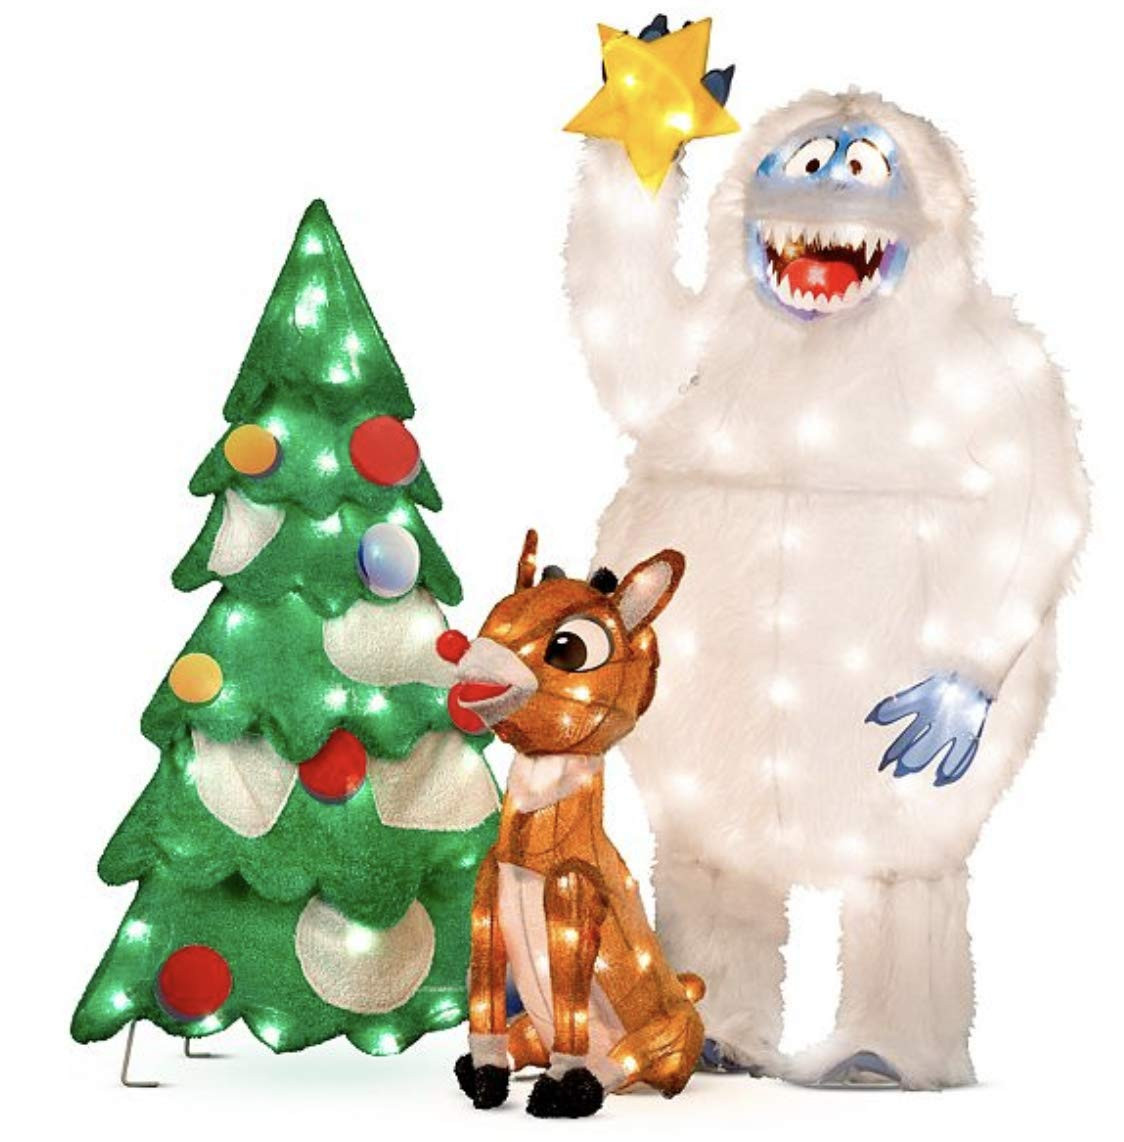 3pc Set Rudolph and Bumble Animated Outdoor Christmas Decorations